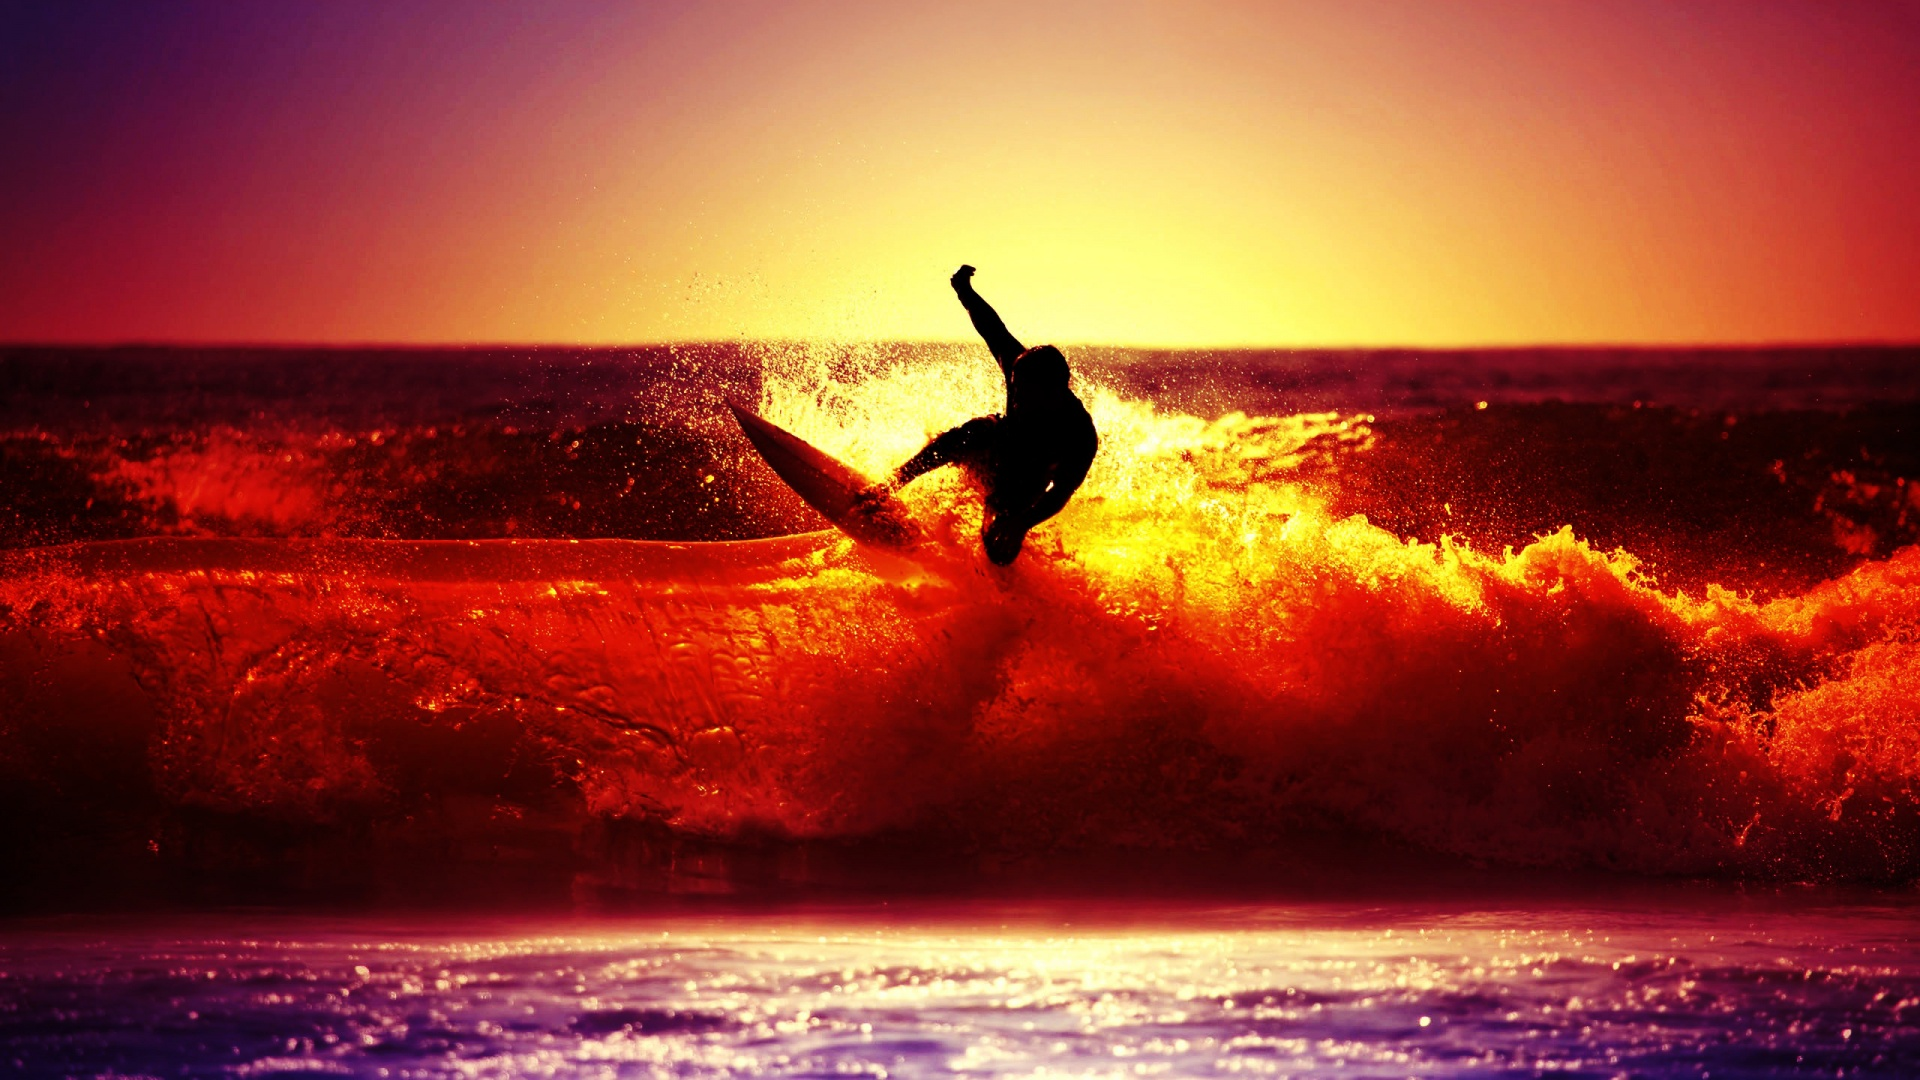 Surfing High Definition Wallpaper   Wallpaper High Definition High 1920x1080